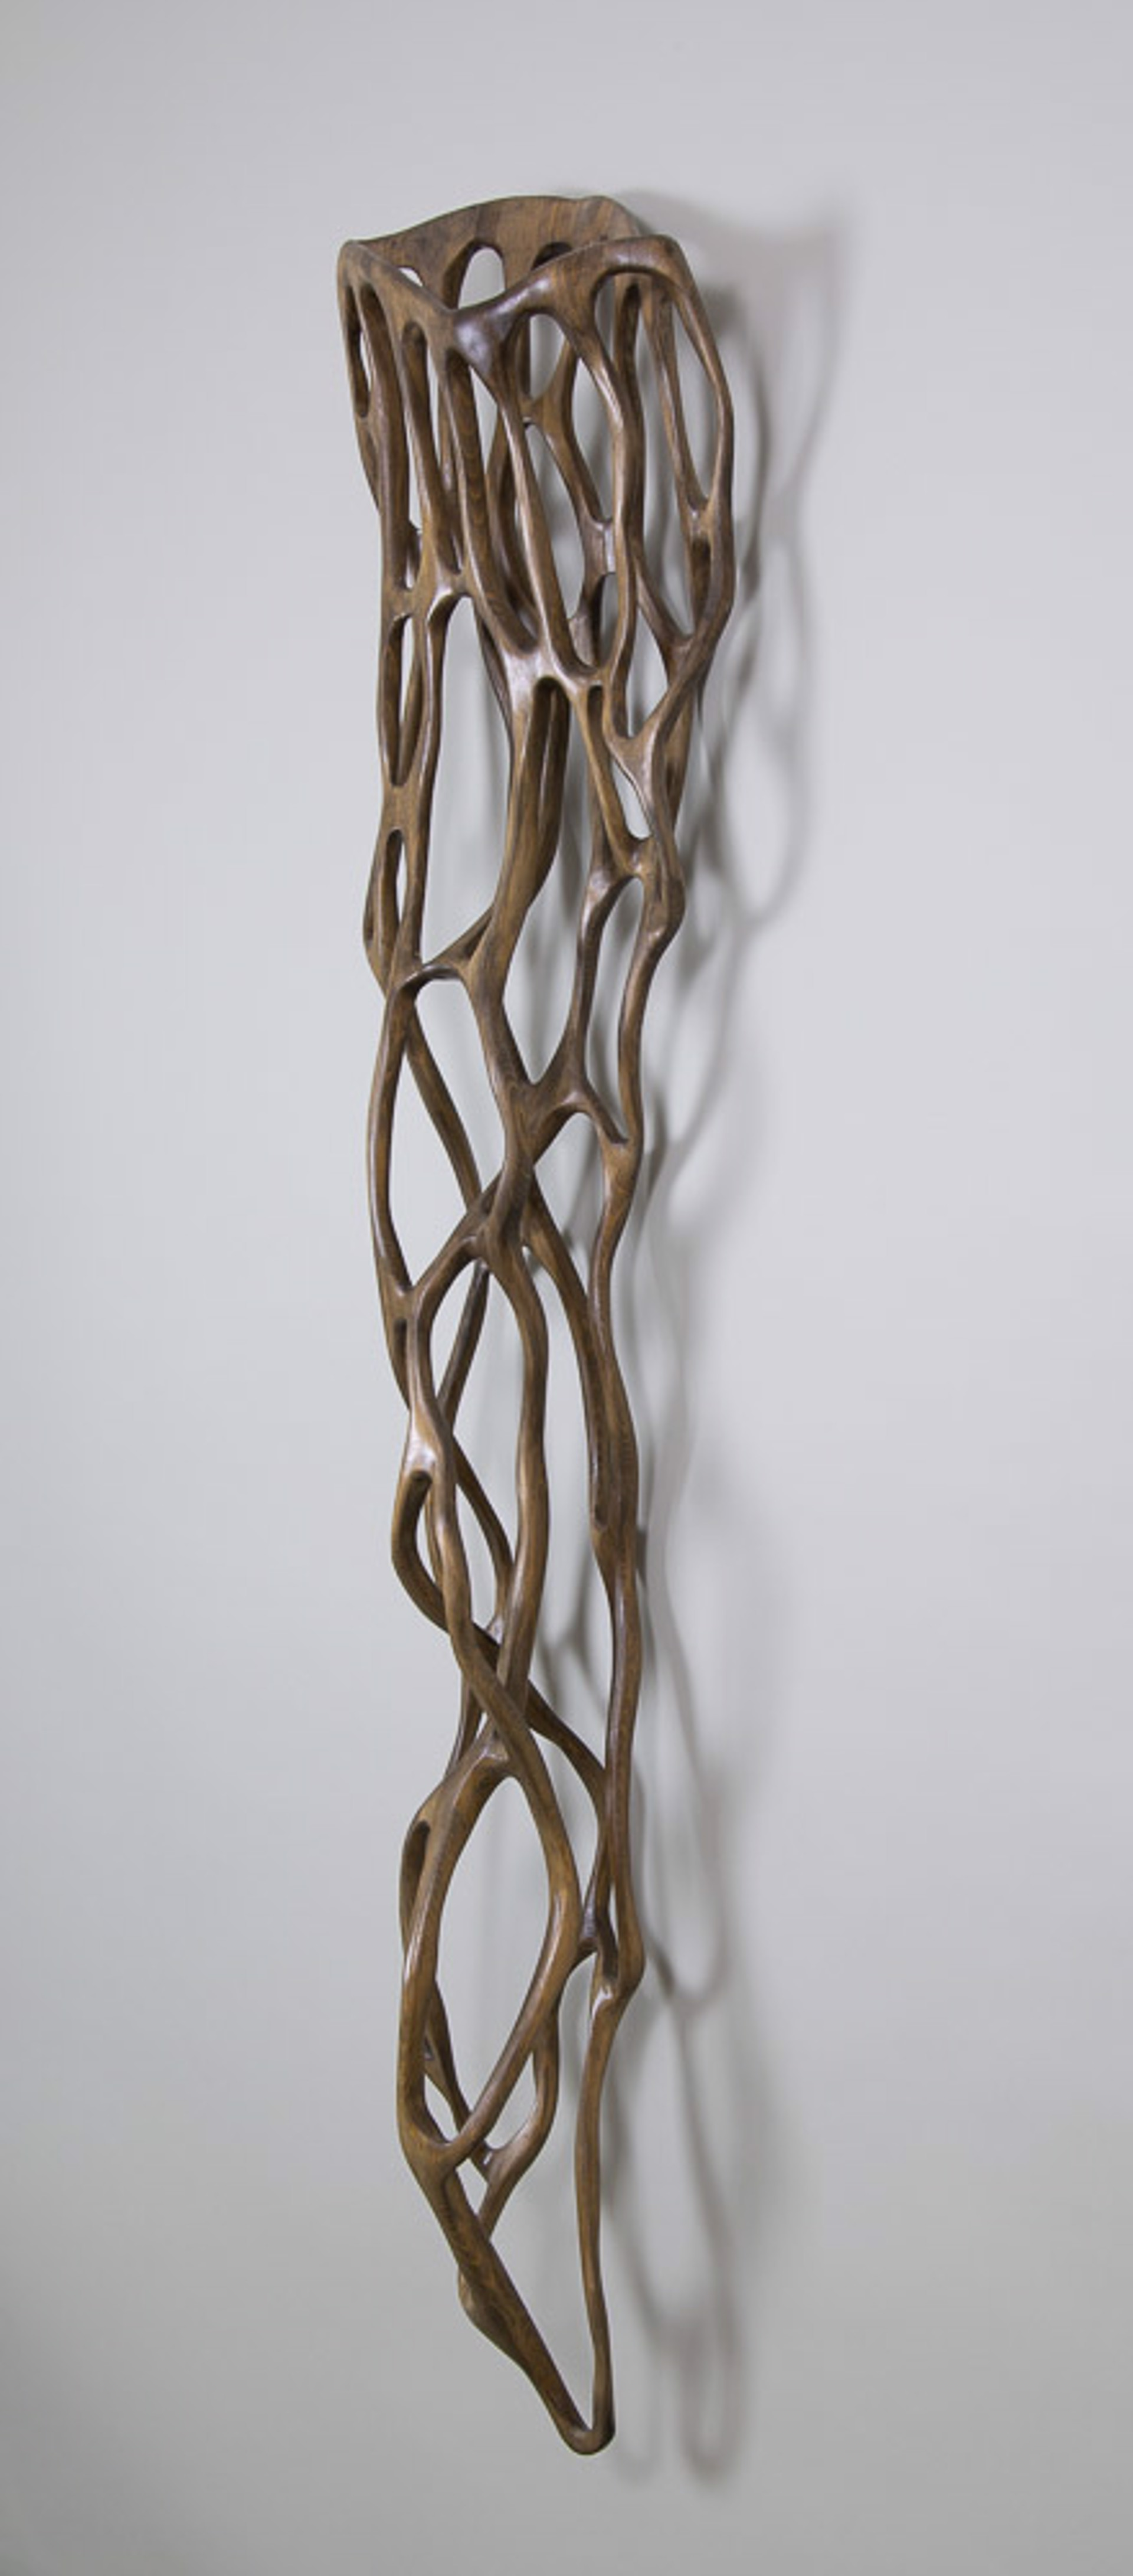 Light Charcoal Vessel  by Caprice Pierucci